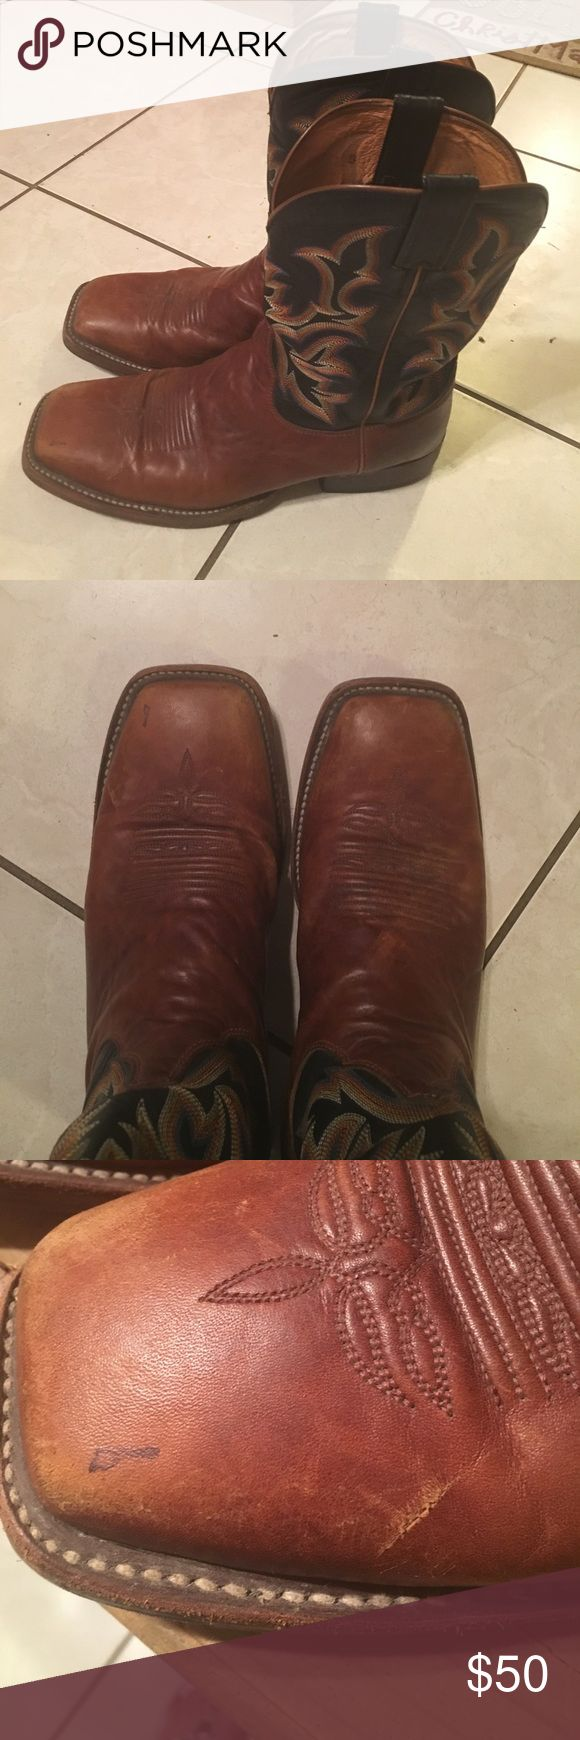 Justin boots for men square toe Good condition!! There is a pic of some minor flaws! Justin Boots Shoes Boots